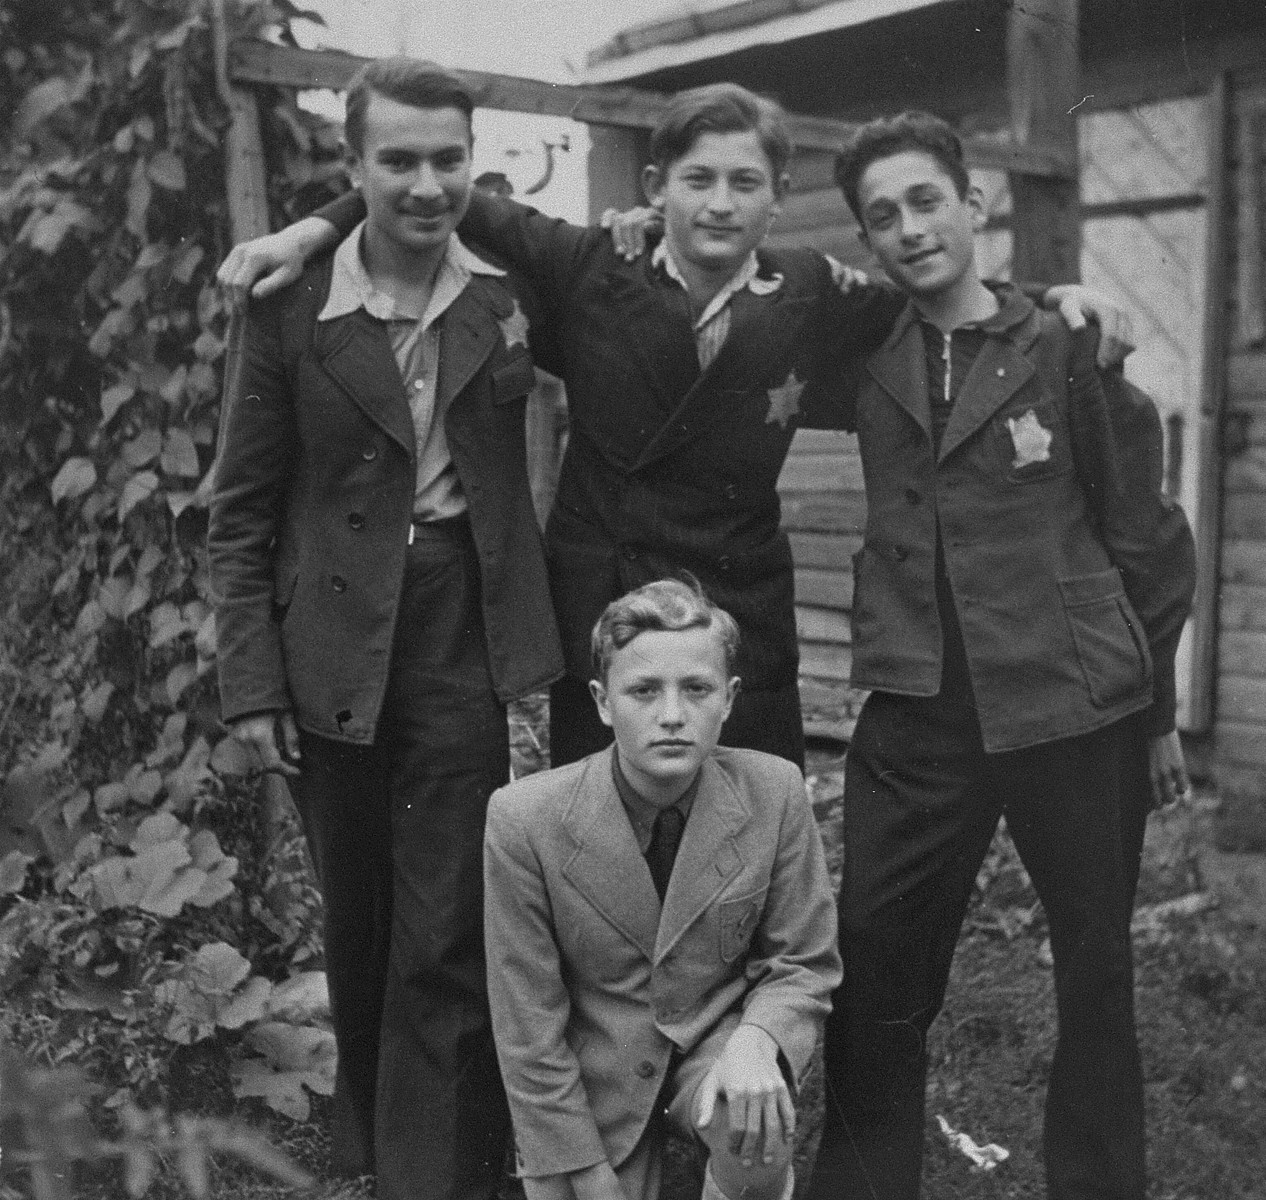 Group portrait of members of Irgun Brit Zion in the Kovno ghetto.  Among those pictured are:  Zalman Kravitz (standing at the left); Shalom Yadkowsky (standing at the right); and Bobi Blumberg (sitting in front).  Kravitz was killed during the last German action in the ghetto; Yadkowsky died in Dachau; and Blumberg survived.